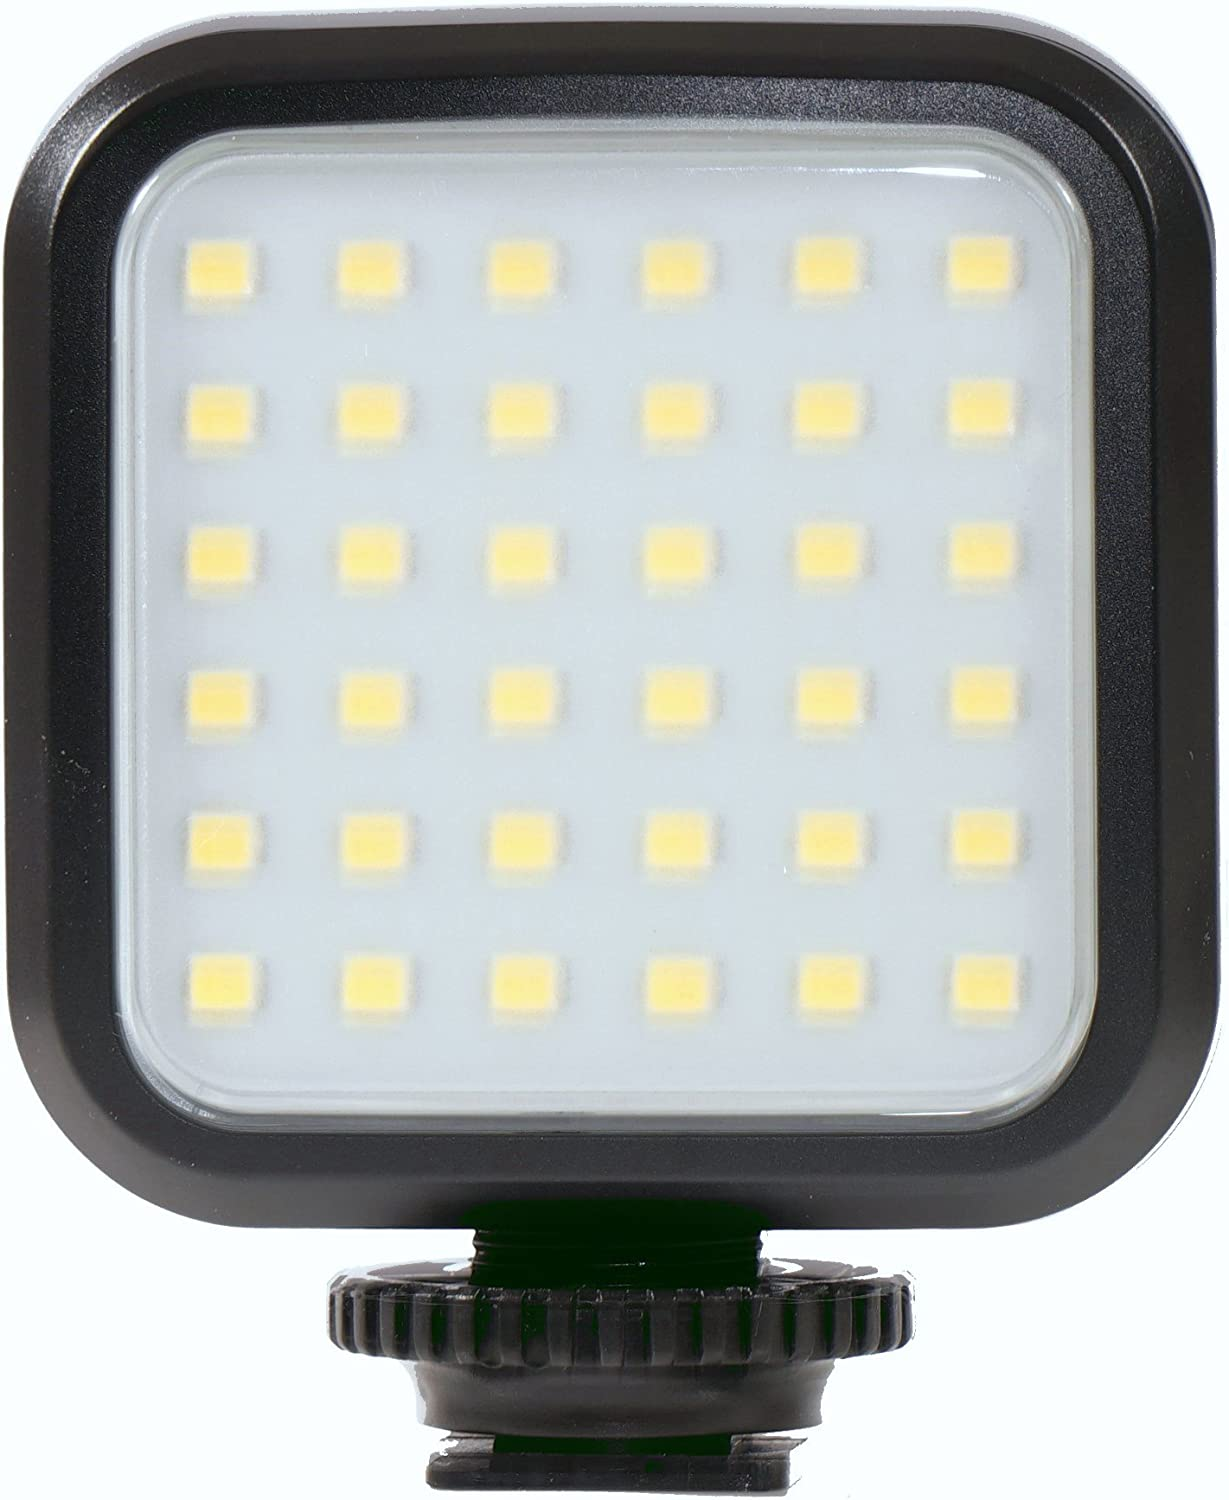 FD-95 FD-97 Sony Digital Cameras: Stackable LED Light Panel CD200 CD500 CD400 CD250 Powerful 36 LED Array Shoe Mount Adjustable LED Video Light for Sony Mavica CD1000 CD300